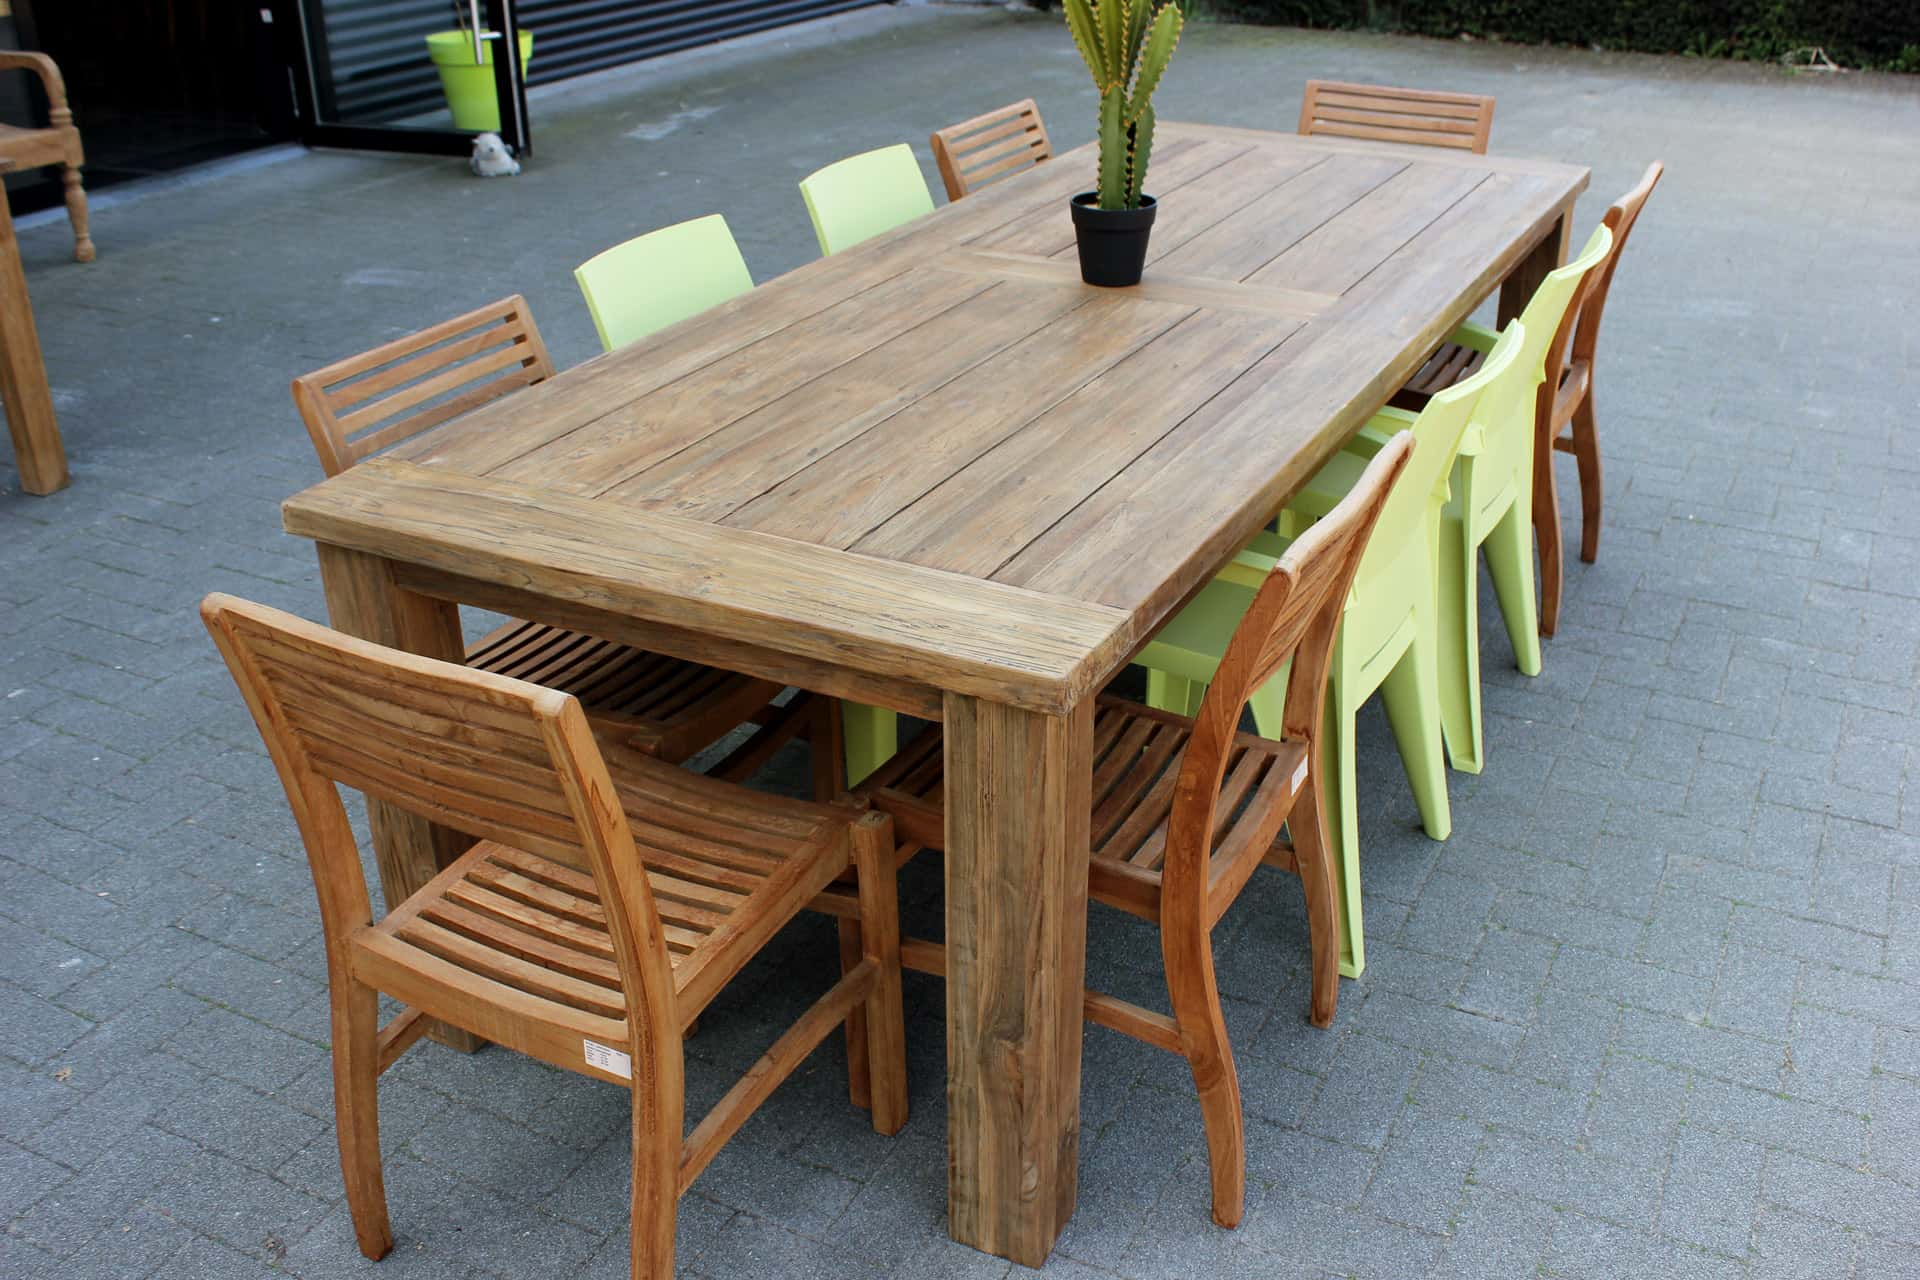 Teak Taman O260KL Old | luxury old teak garden table with thick top. Small or large garden table. Teak garden tables, quality from Indonesia at TEAK2.